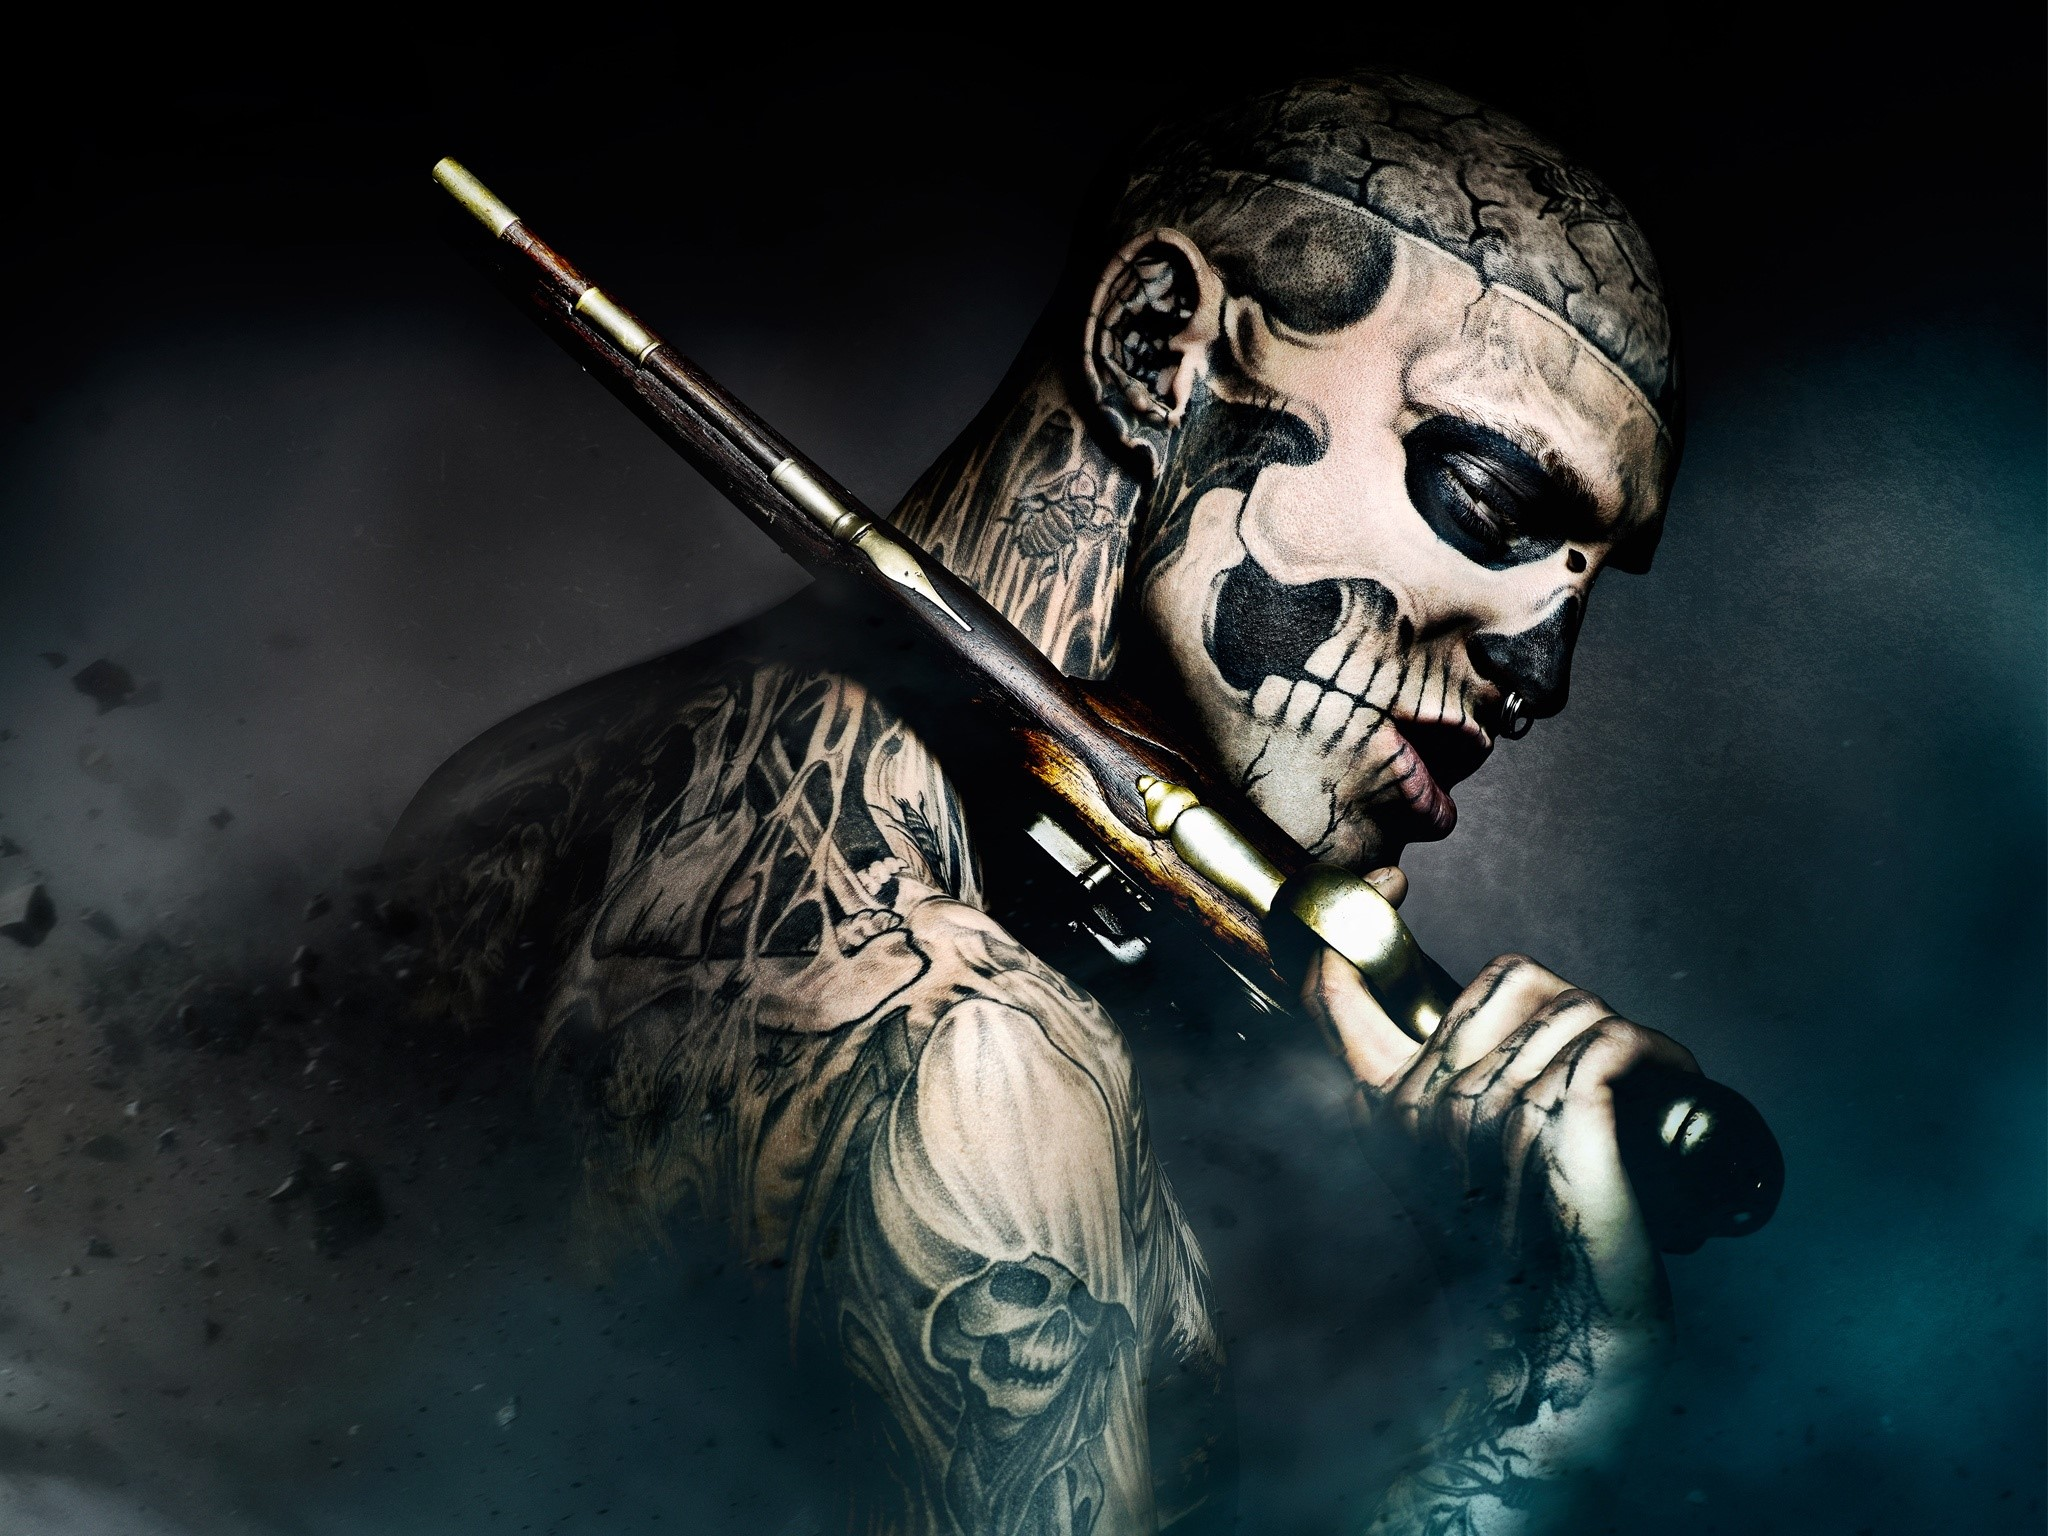 Wallpaper 47 ronin freak